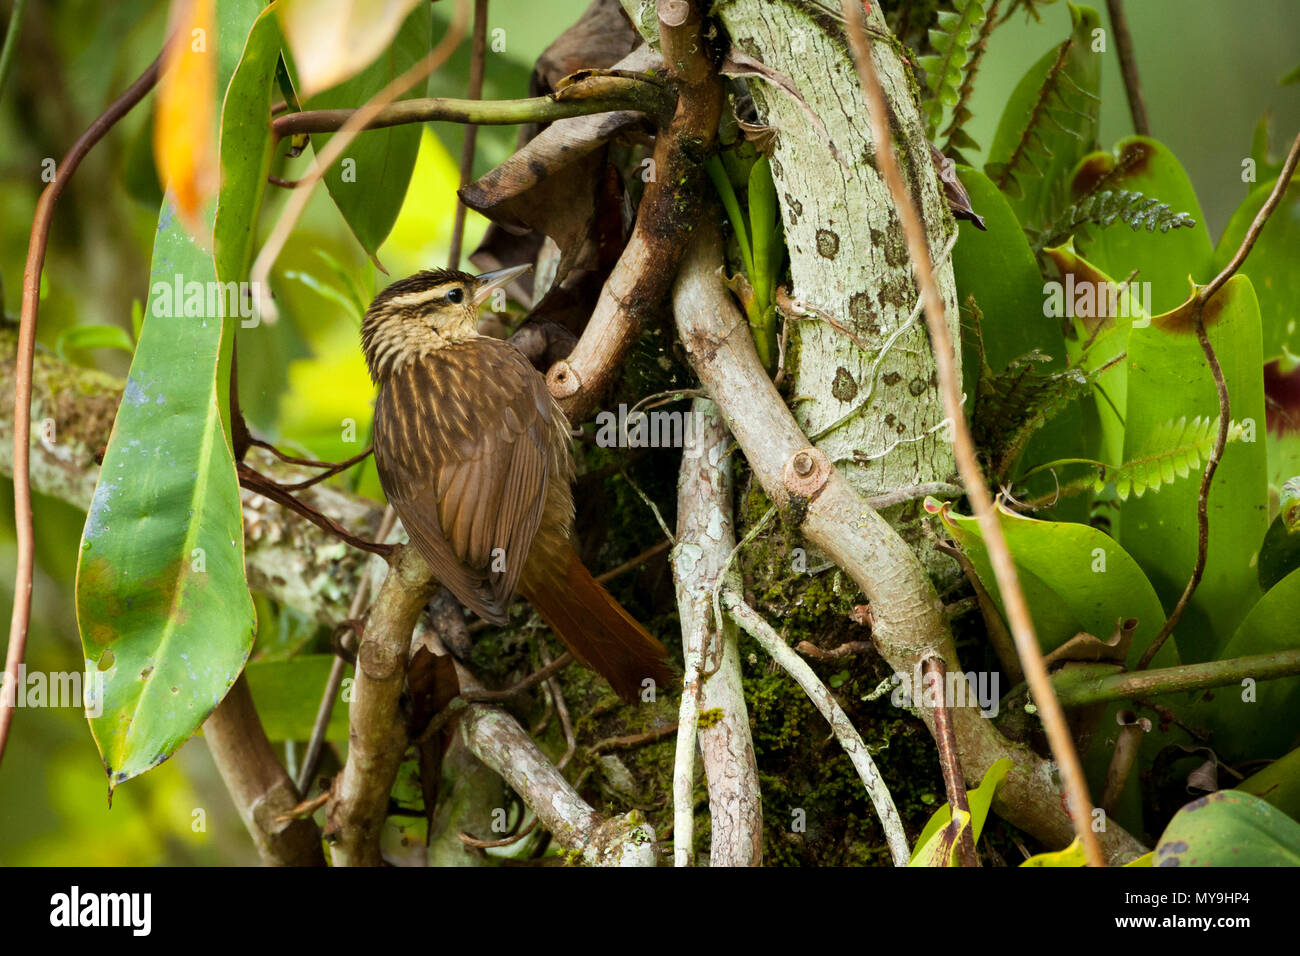 A Pale-browed Treehunter (Cichlocolaptes leucophrus) foraging for insects among bromeliads and other epiphyte growth in the Atlantic Rainforest. - Stock Image